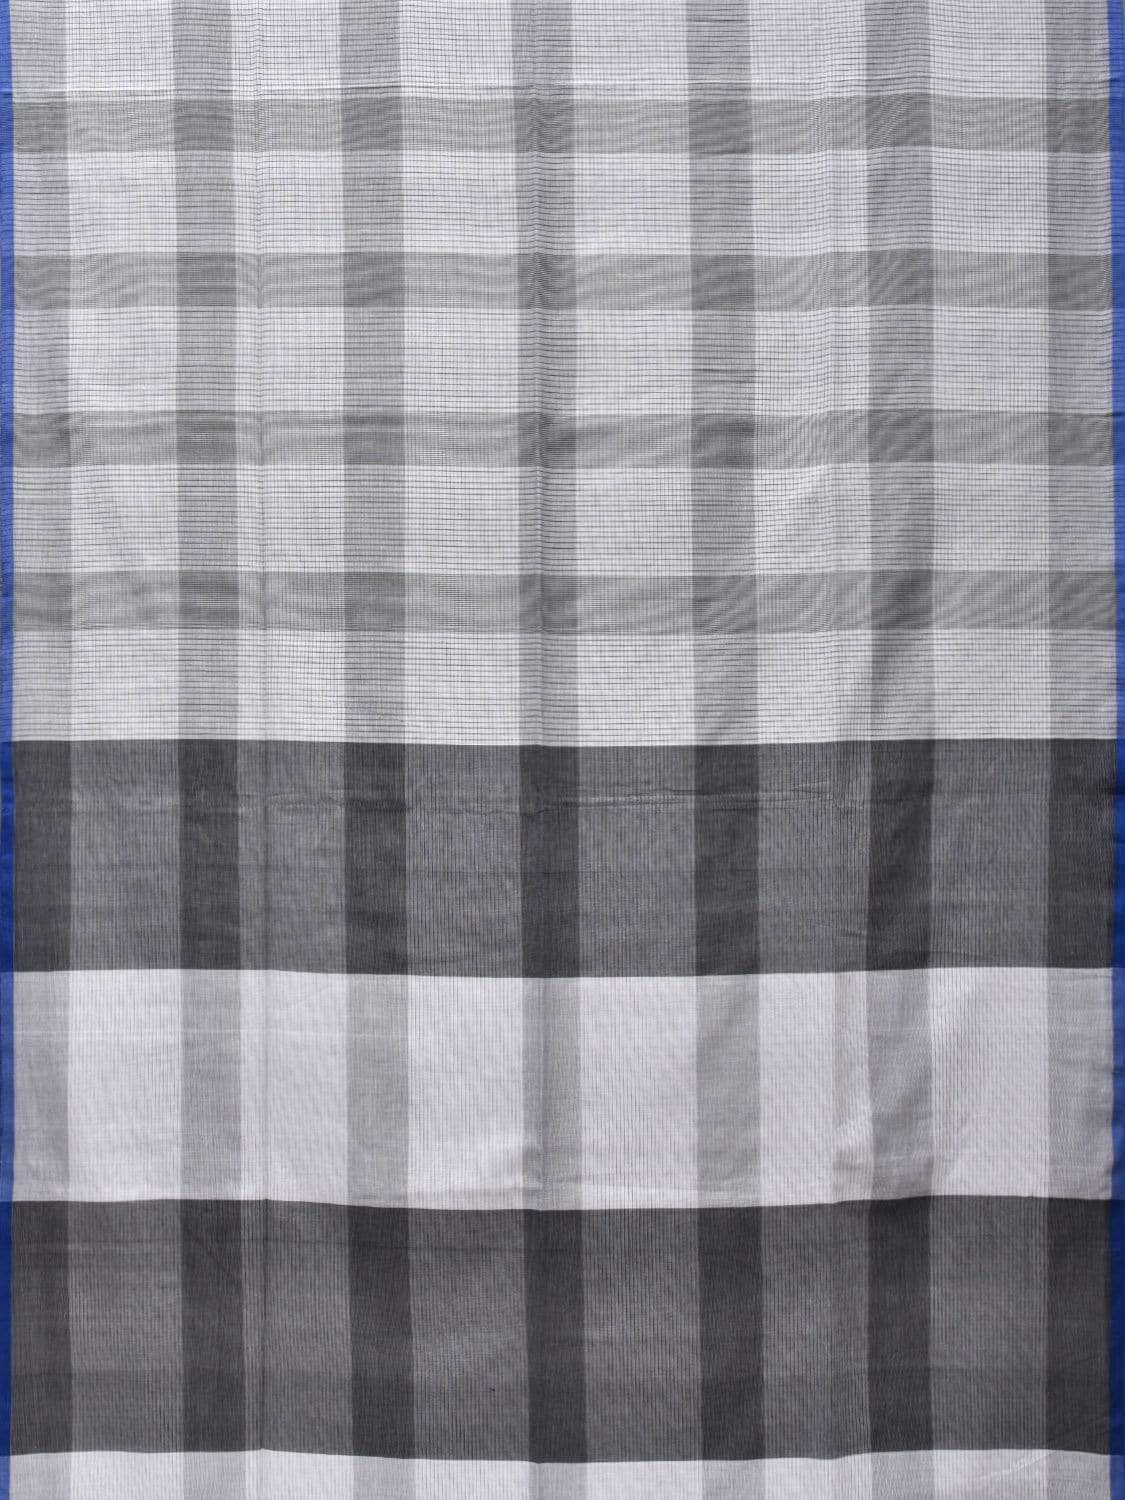 White and Grey Soft Cotton Handloom Saree with Checks Design o0283